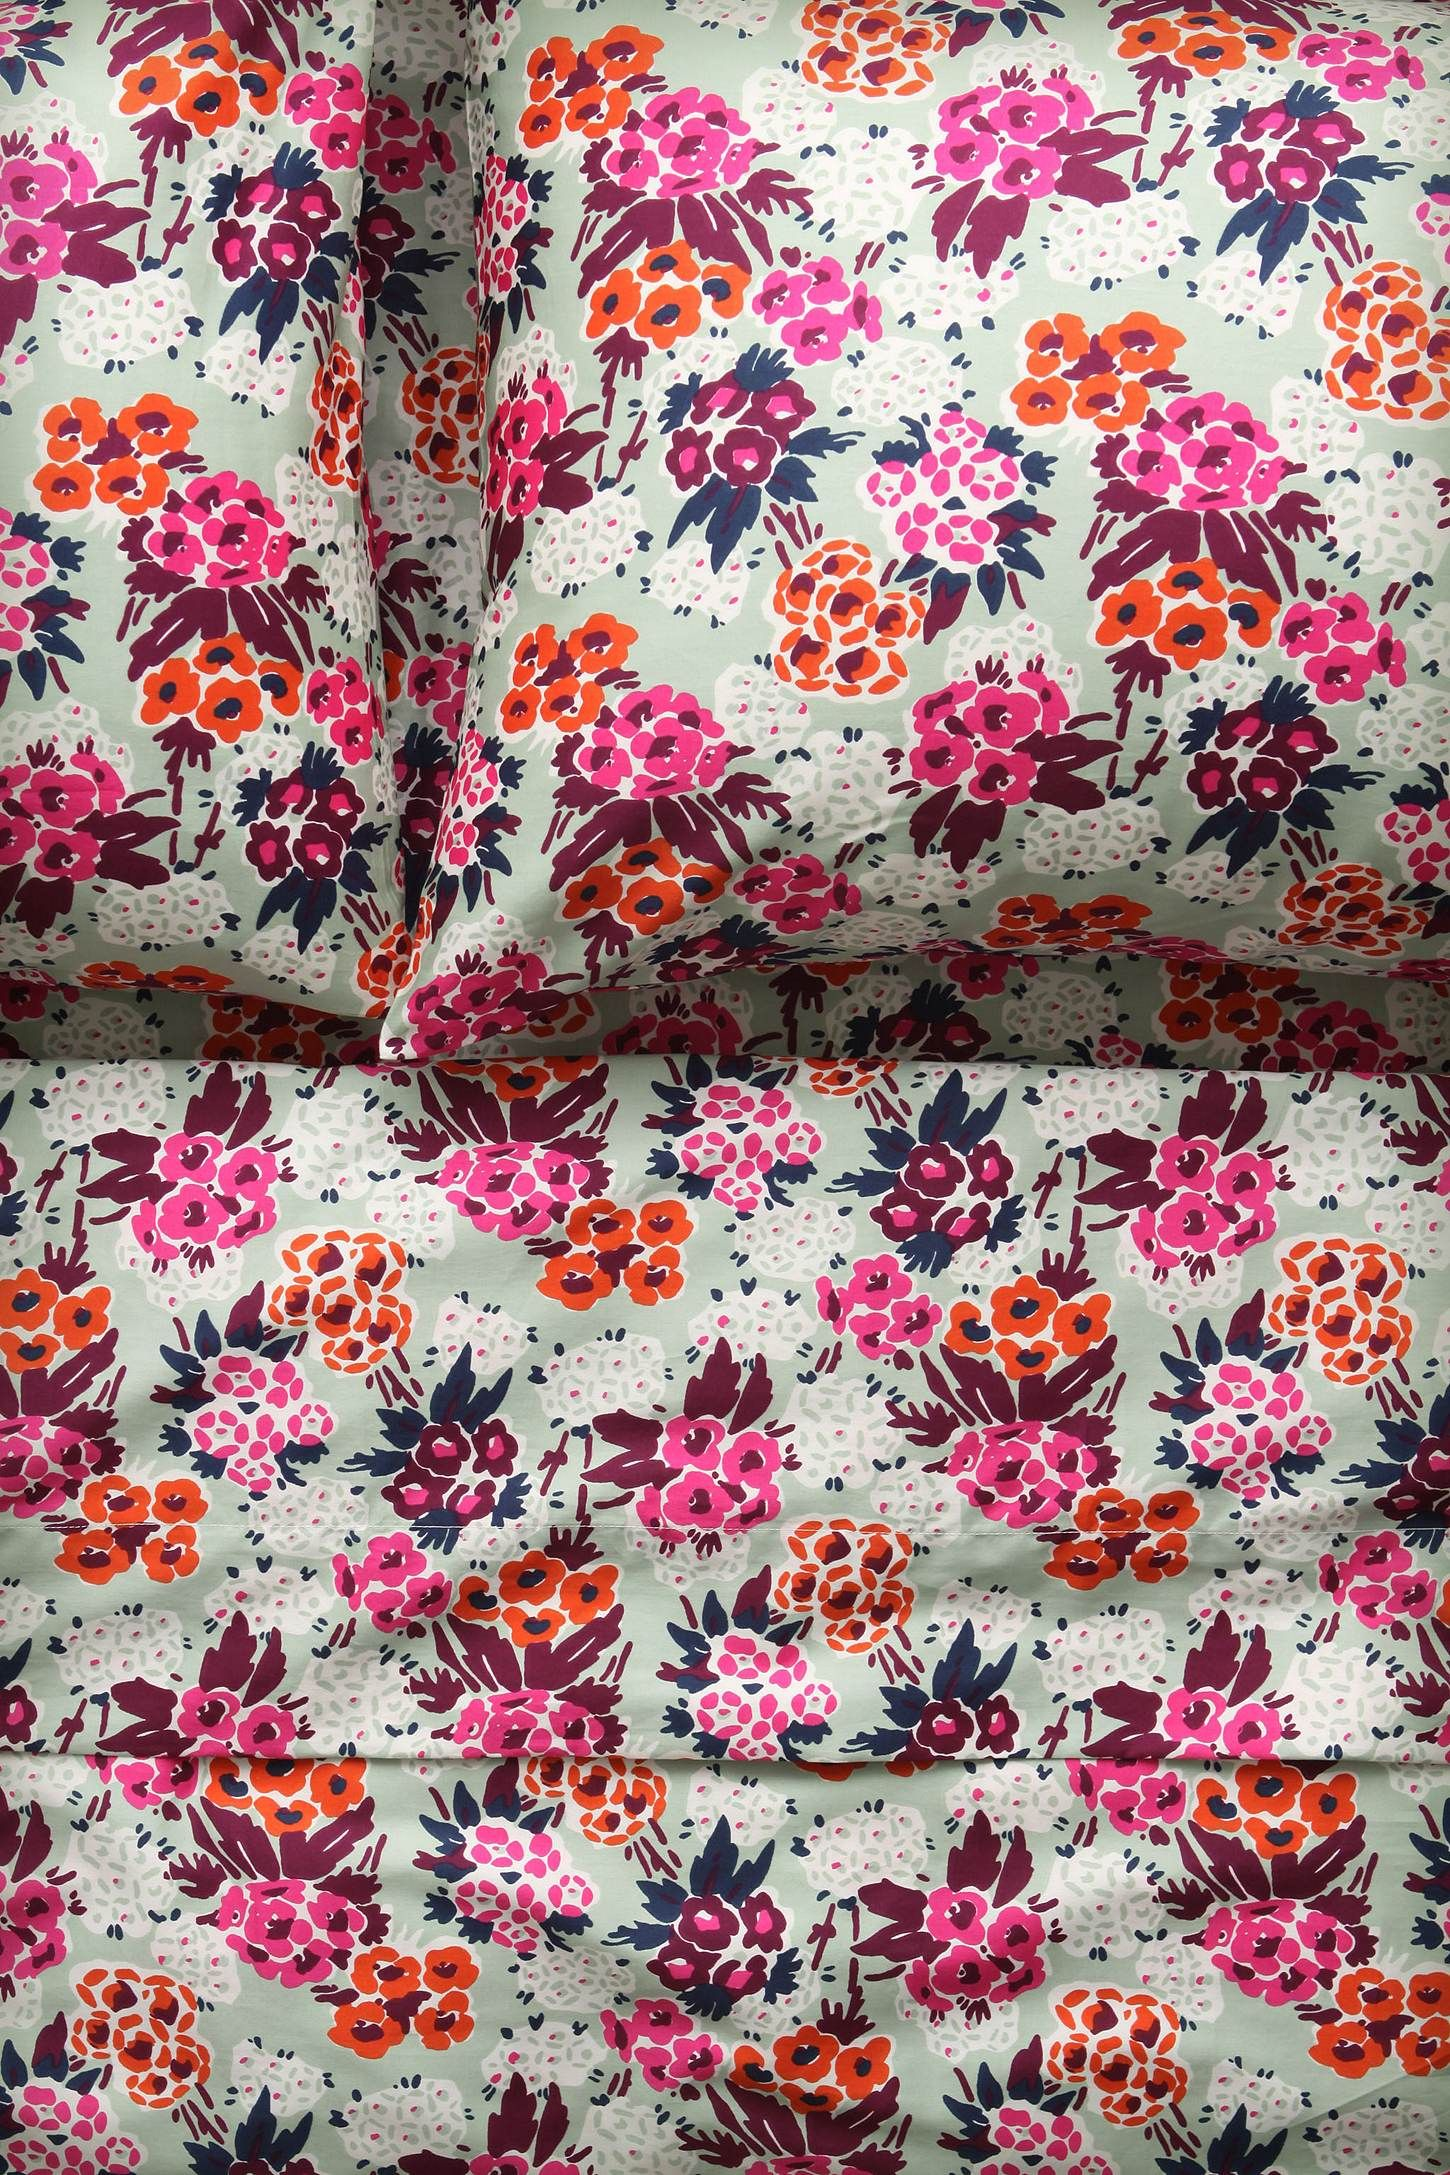 Floral bedding in pink and orange